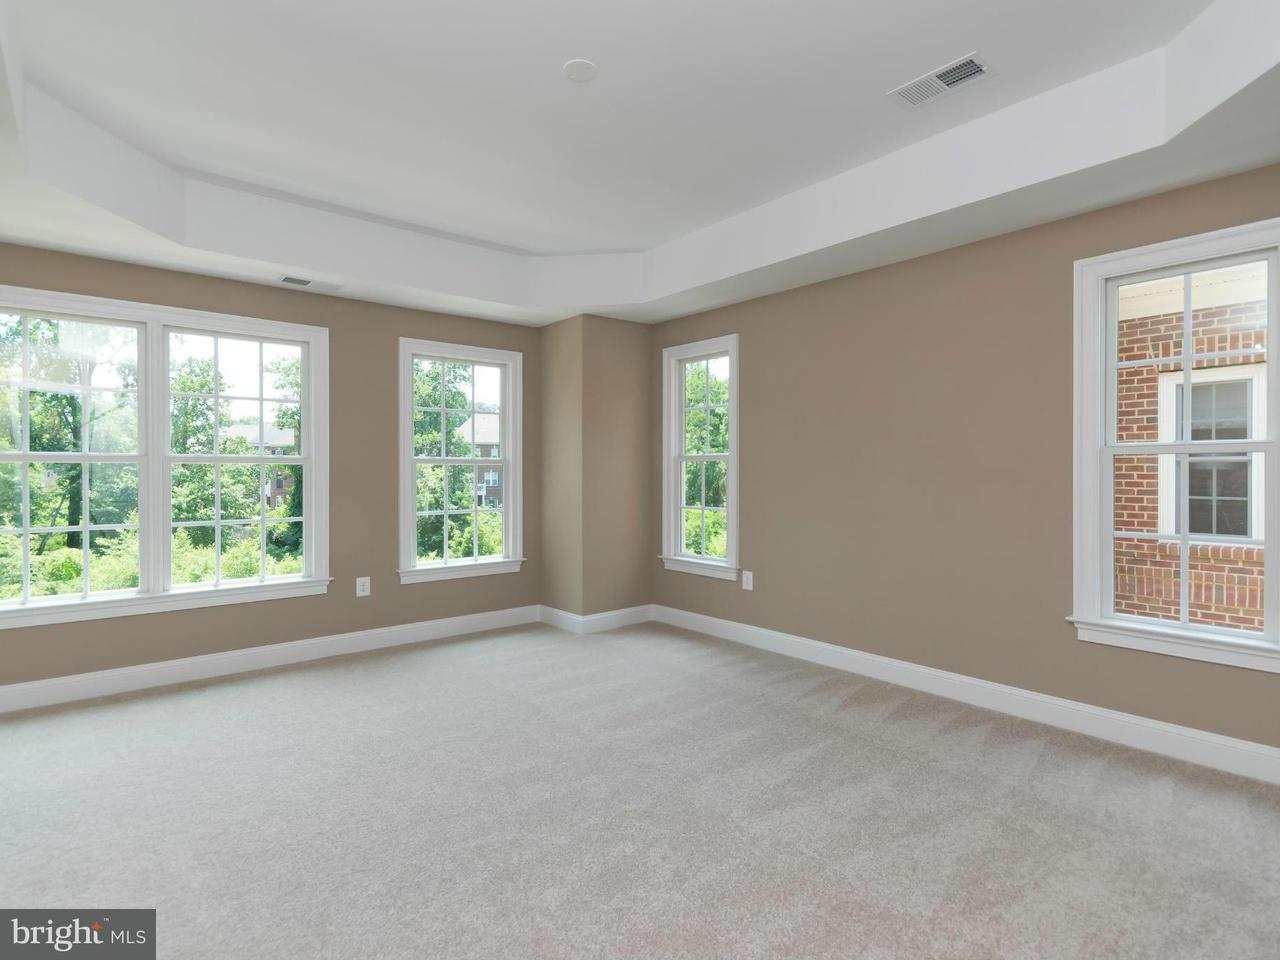 Additional photo for property listing at 10671 Yorktown Court 10671 Yorktown Court Fairfax, Virginia 22030 États-Unis